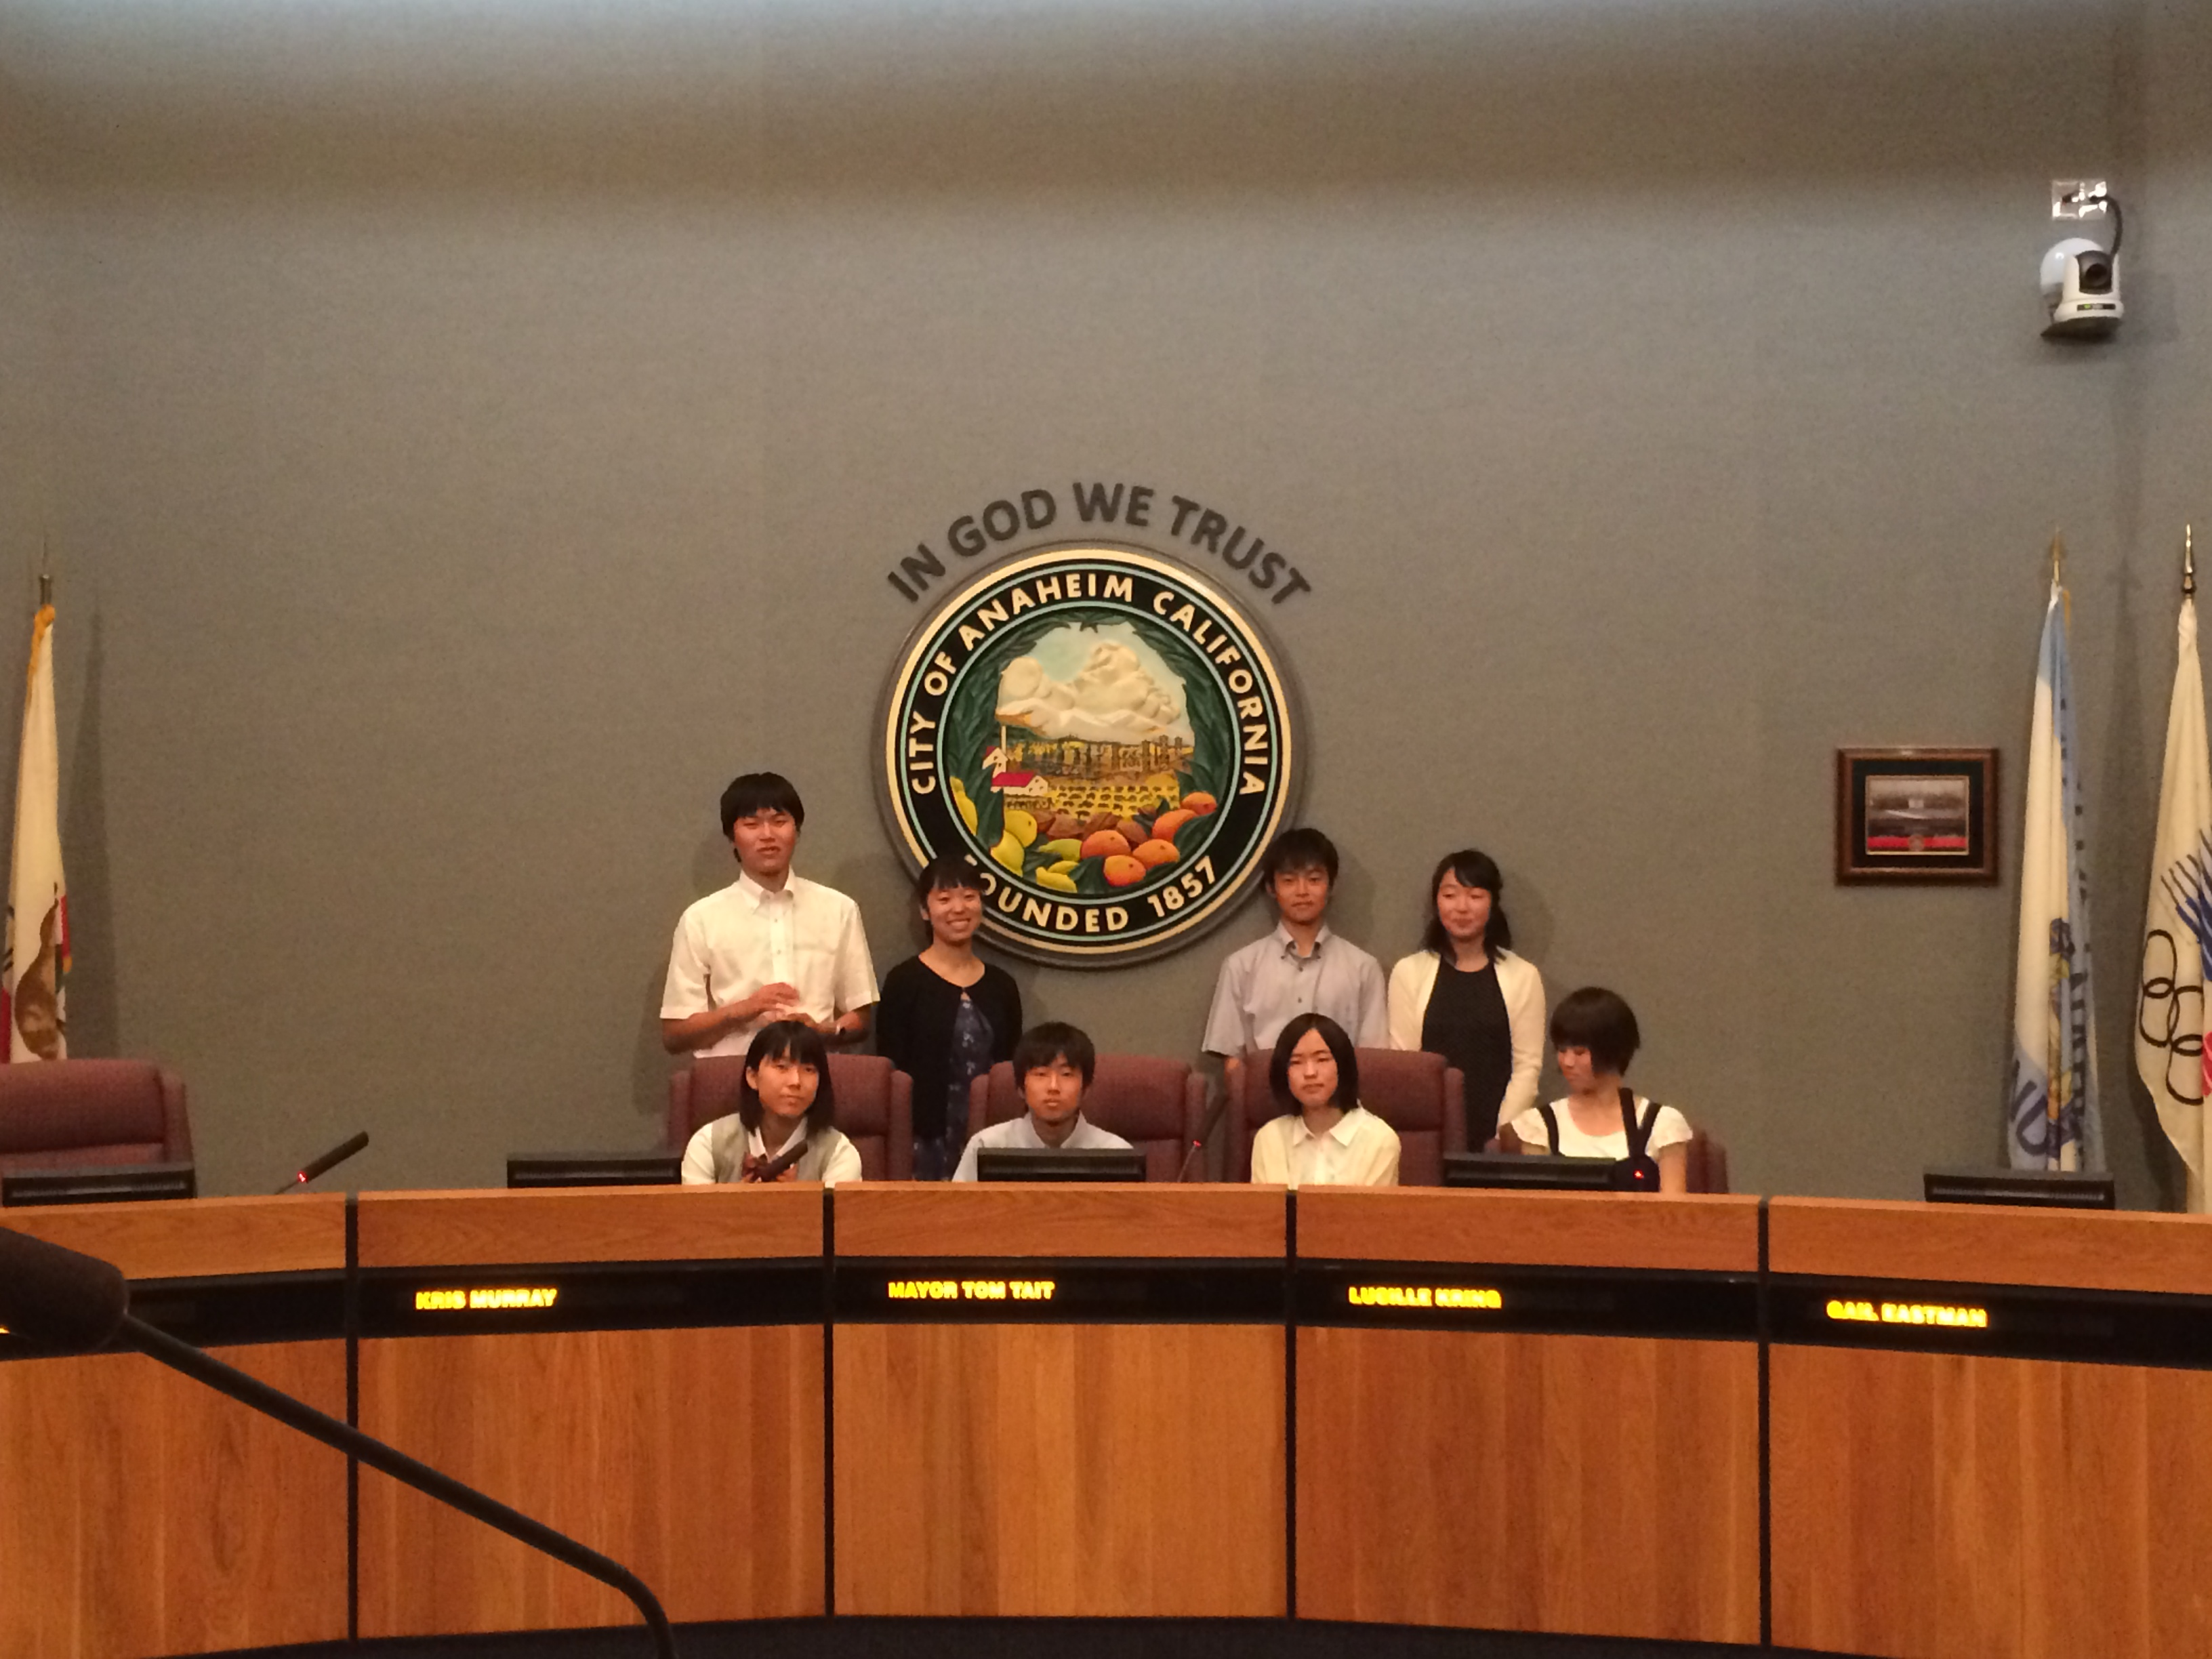 Students standing in front of the Anahiem City seal behind the curved table.